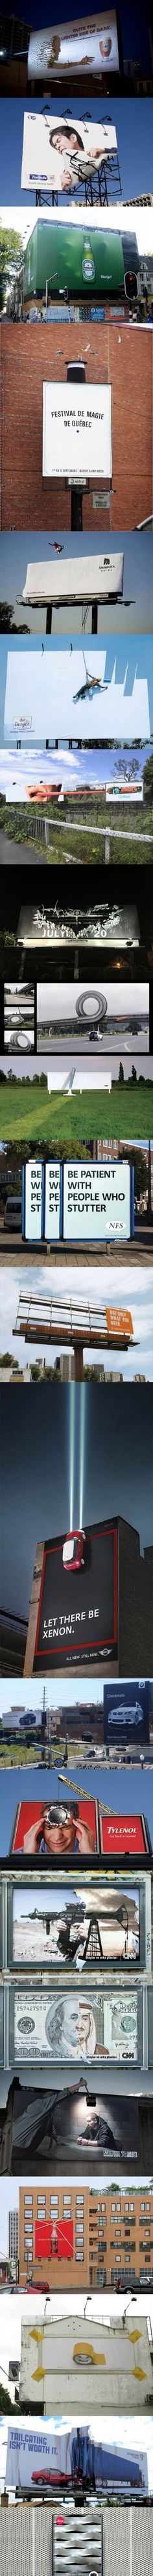 Awesome billboards.